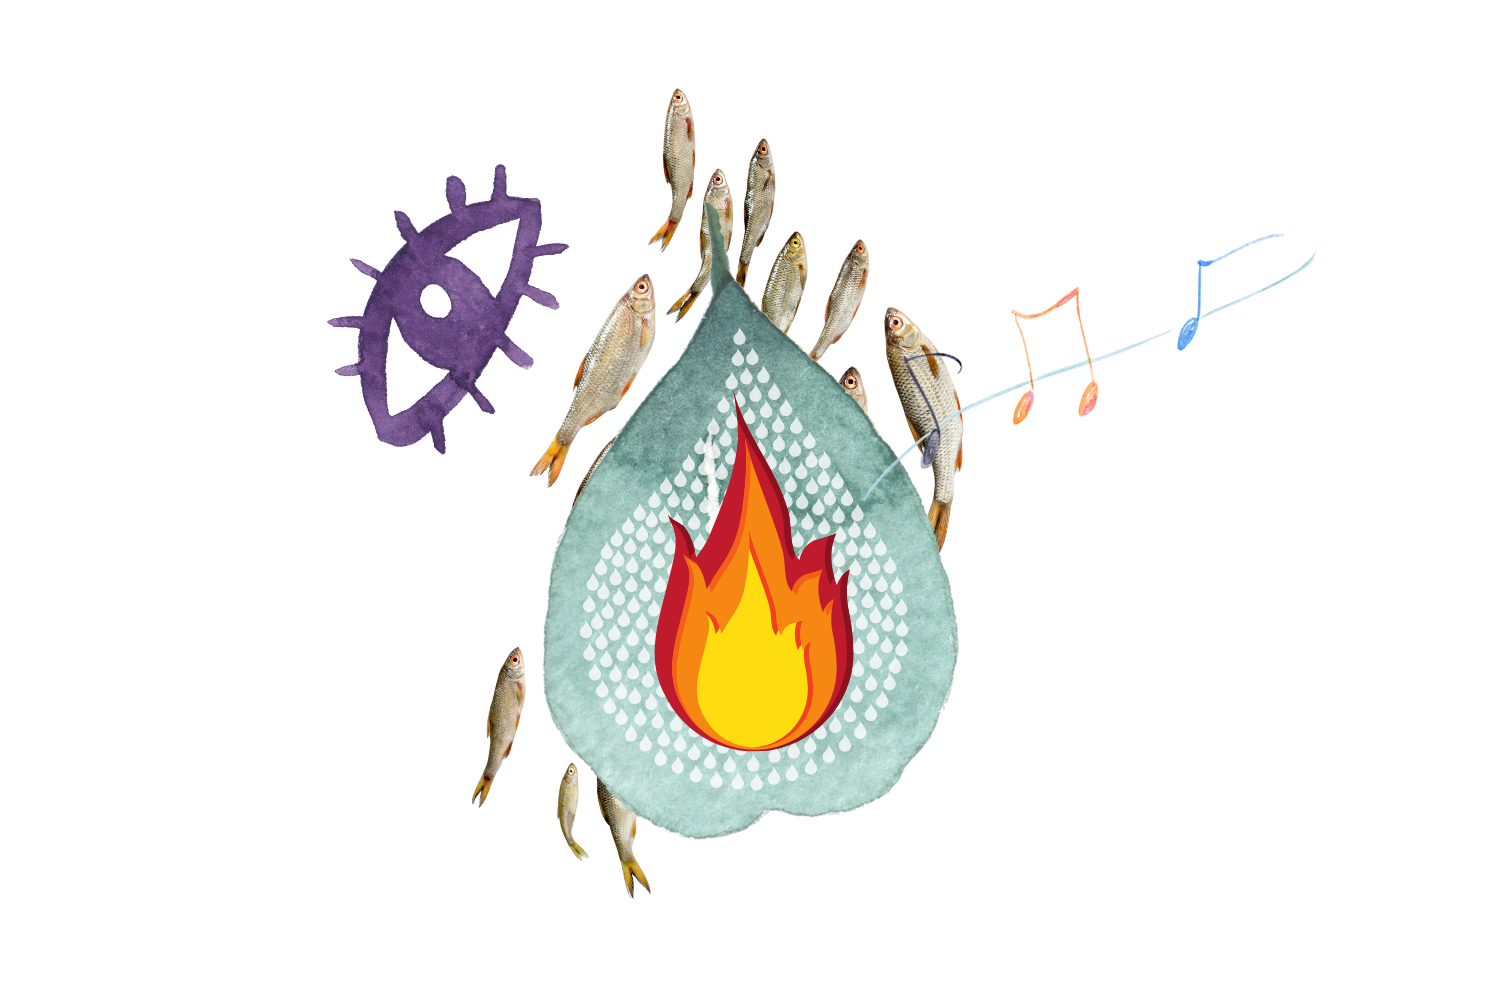 An abstract, absurd collection of images arranged to look like a water-drop. They include a green leaf overlapped by a water droplet which is overlapped by a flame. Behind these are a school of silver fish. An illustration of a purple eye floats at the top left, and music notes appear to be emerging from the centre.